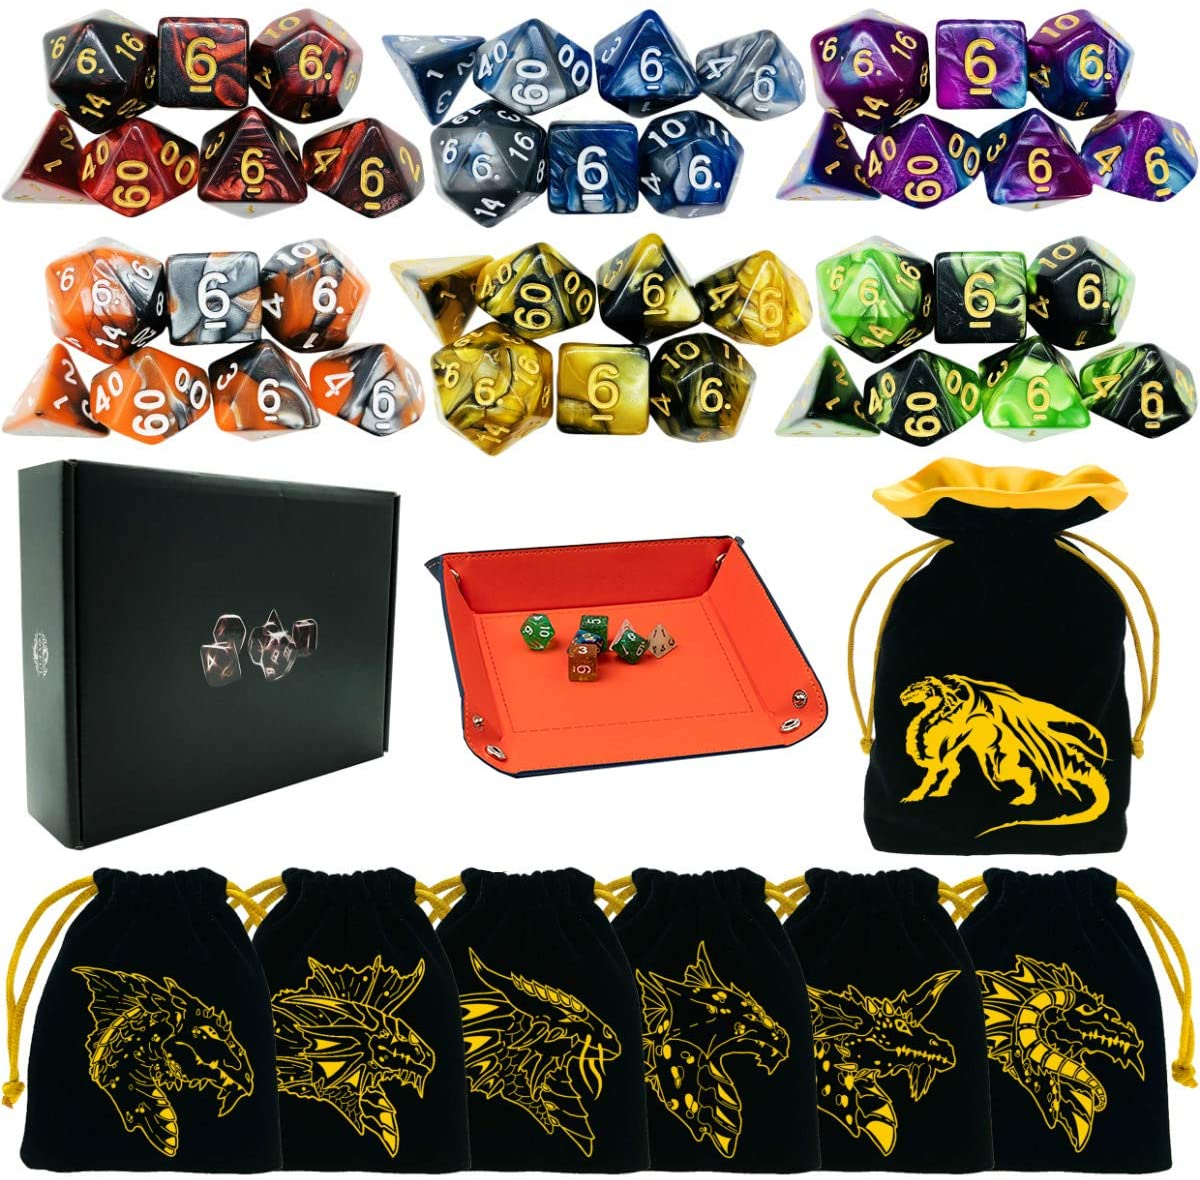 6 Sets DND Dice Polyhedral Dice Dungeons and Dragons Rolling Dice for RPG MTG Table Games Dice Bulk with Free Six Drawstring Bags and PU Leather D&D Dice Tray